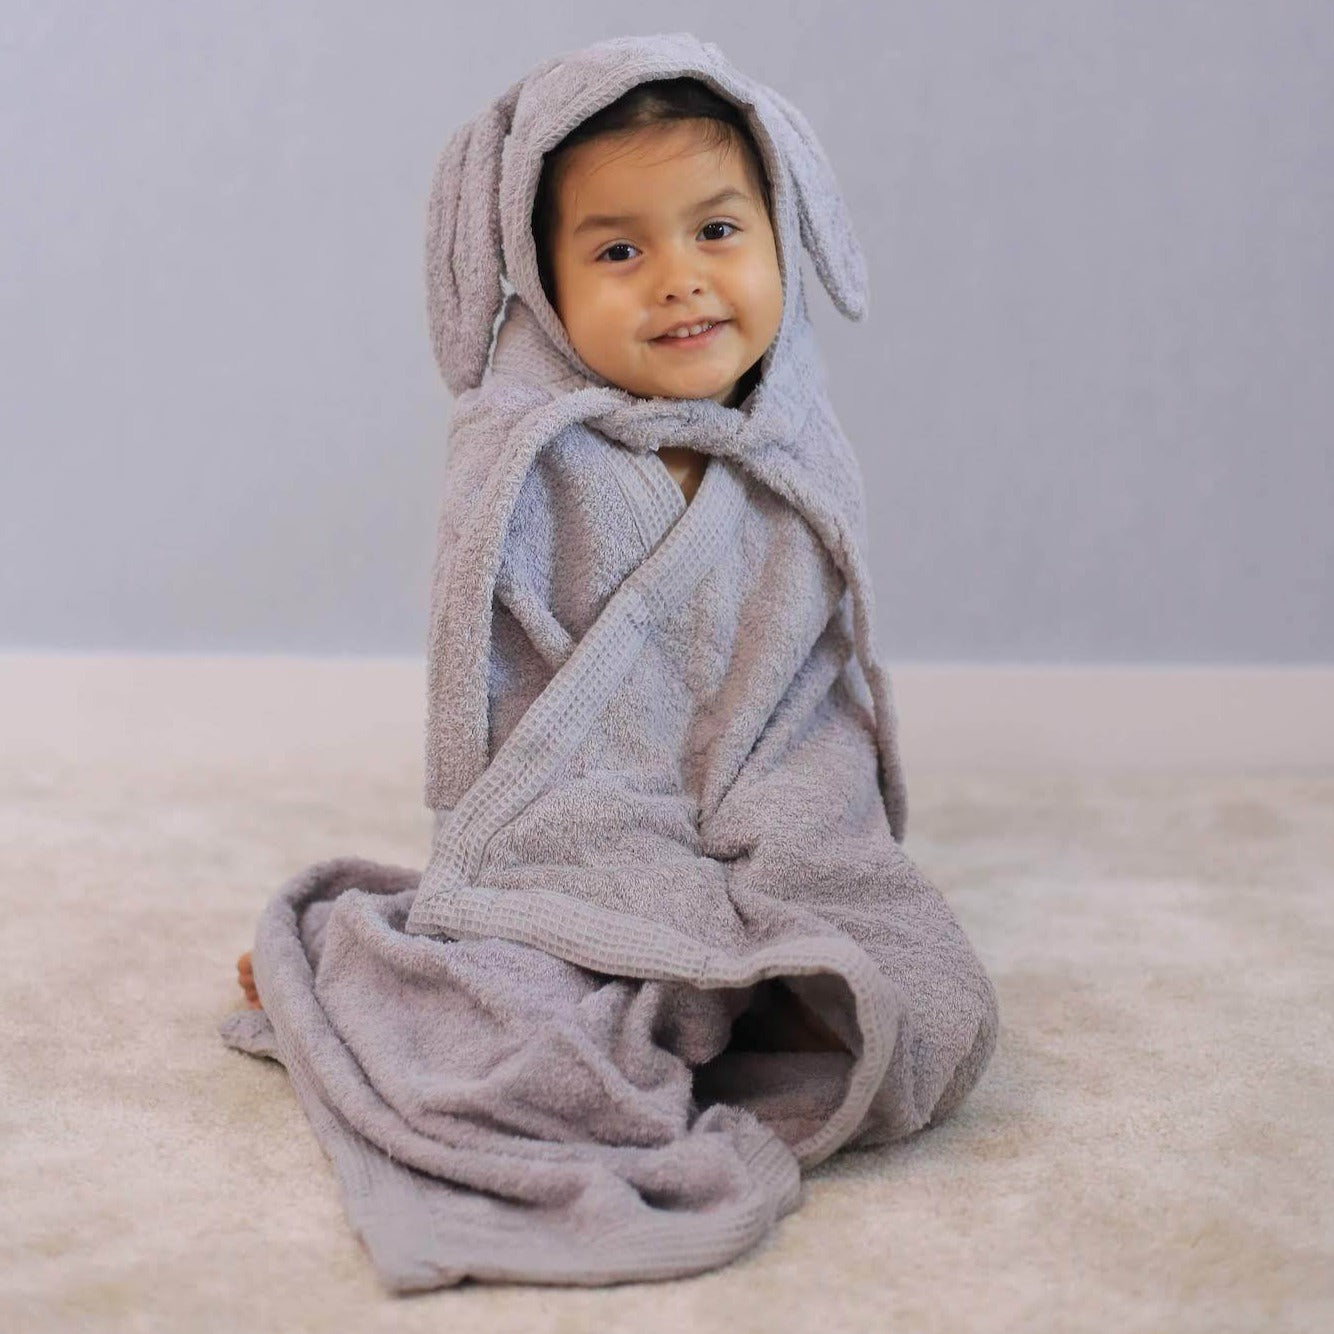 Handsfree Cuddly Towel